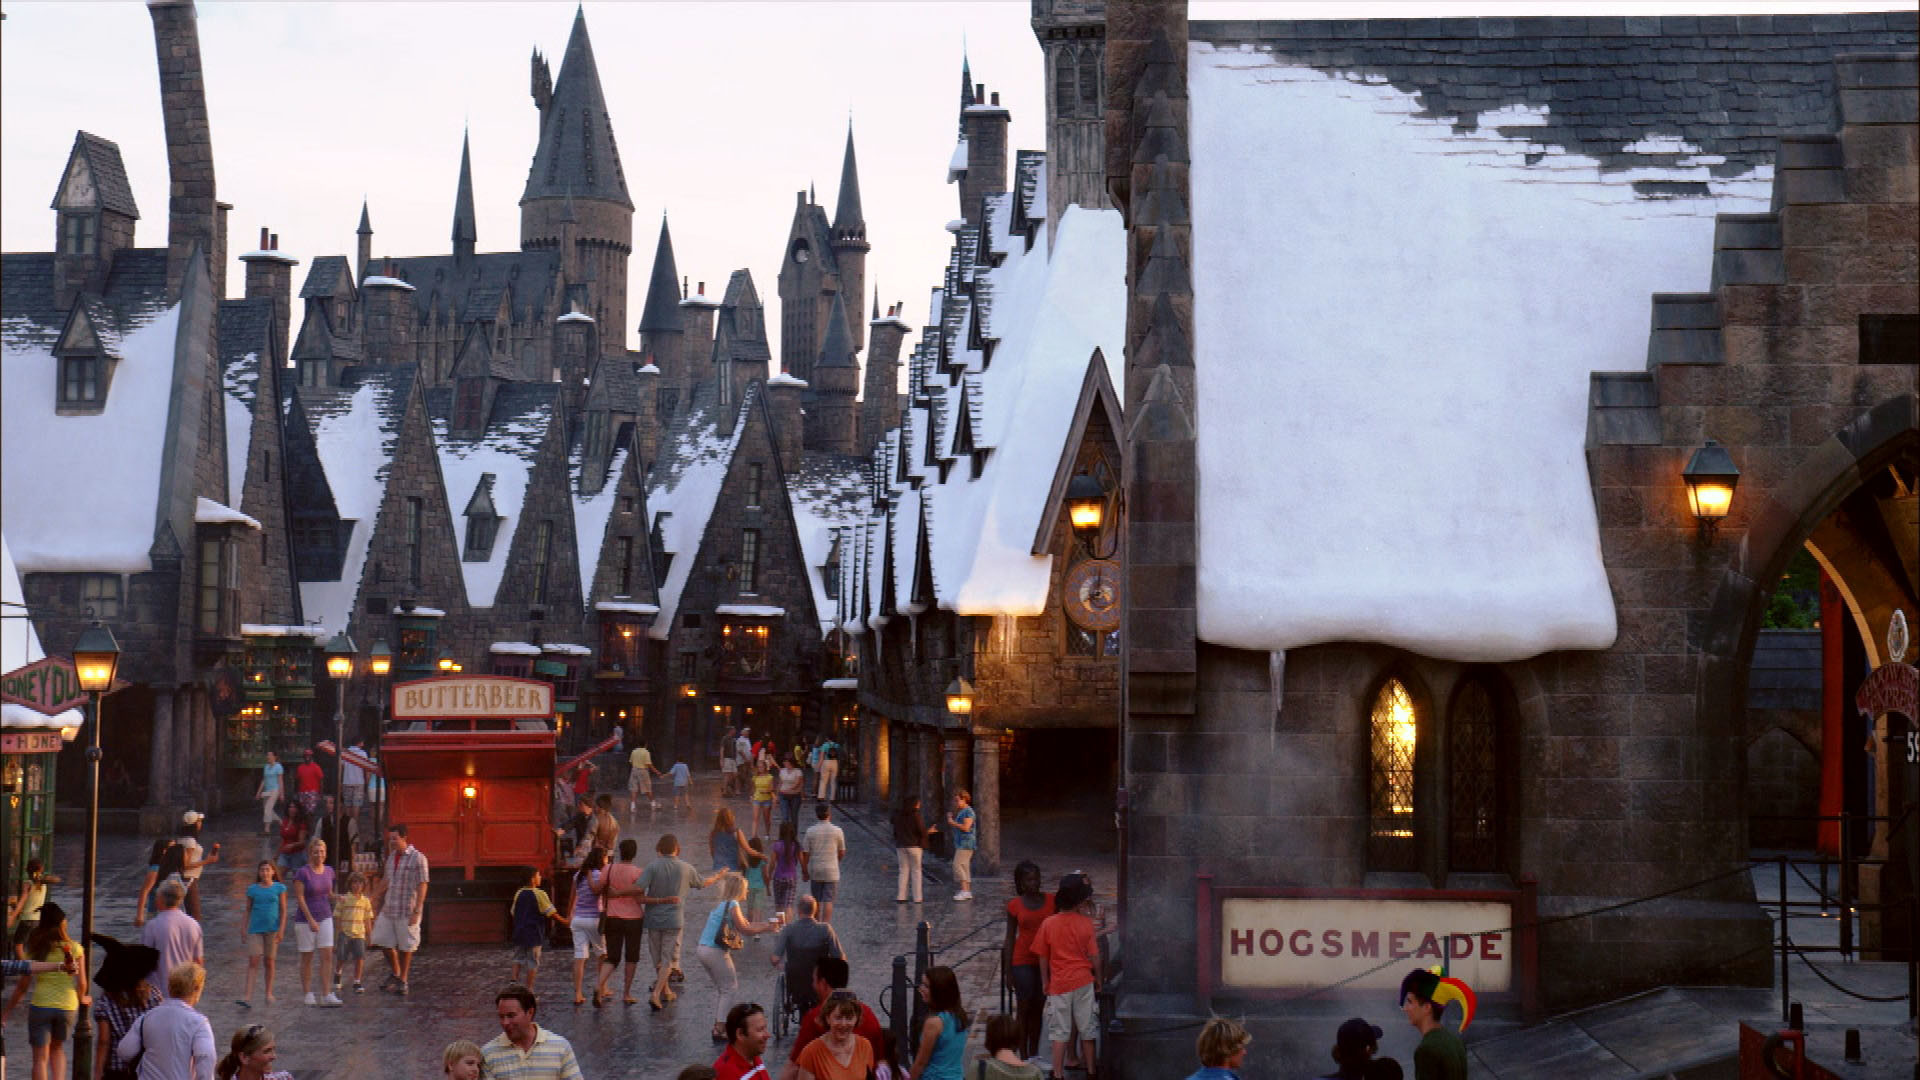 Res: 1920x1080, Town of Hogsmeade wallpaper - Click picture for high resolution HD wallpaper